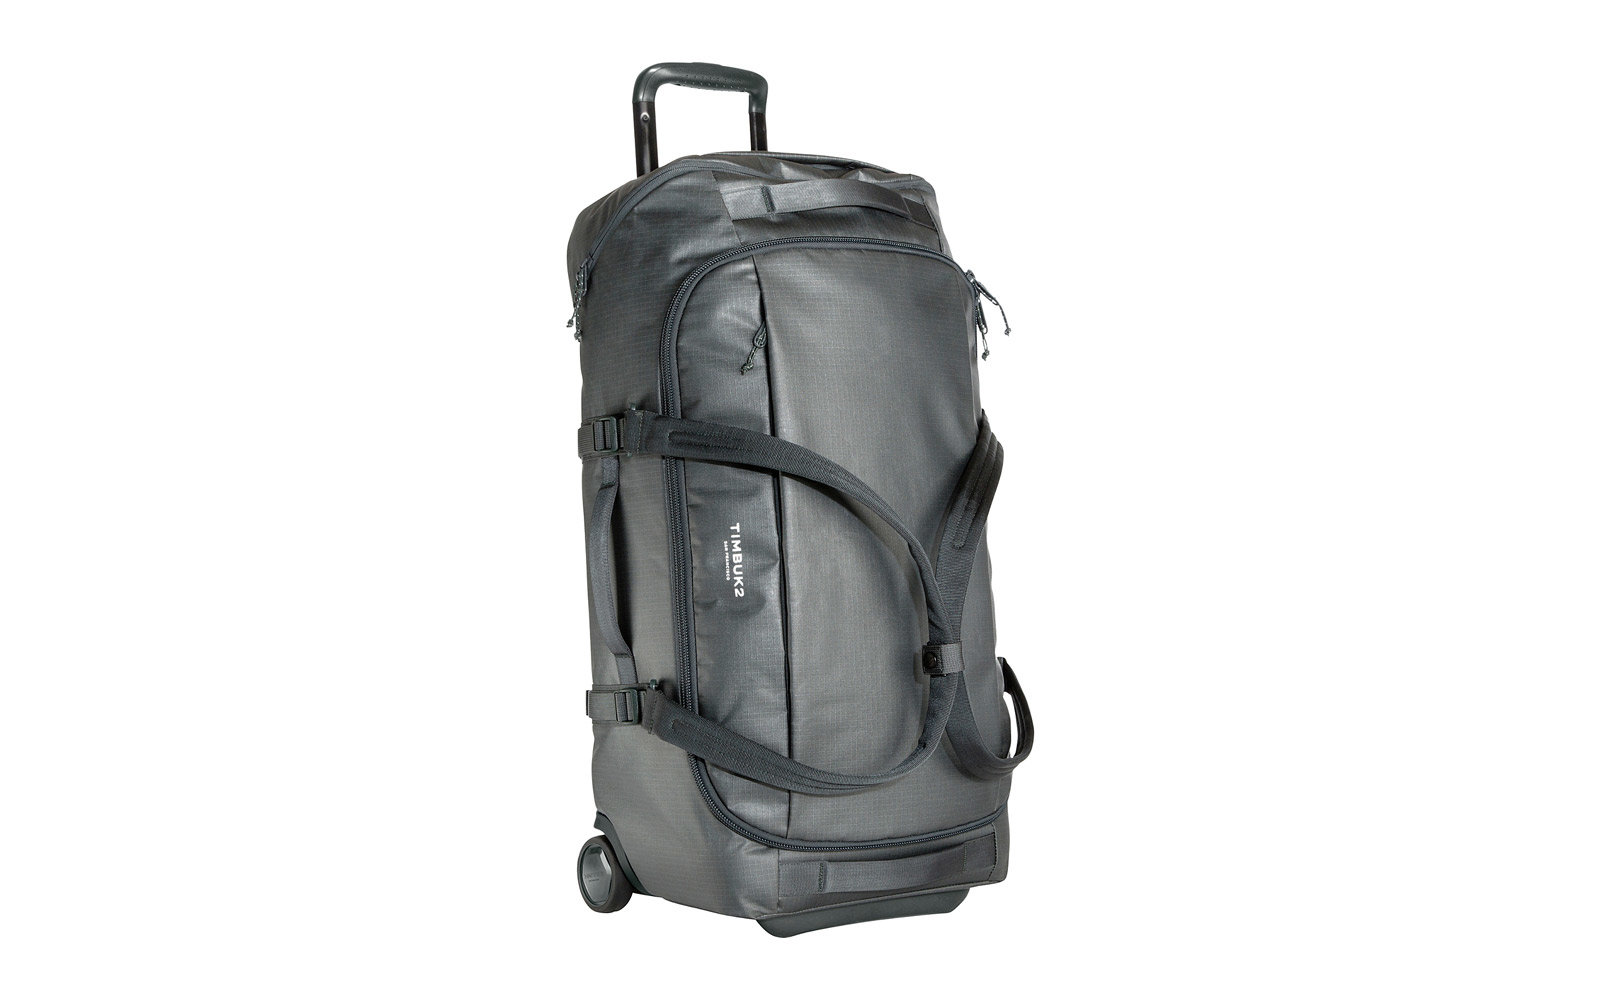 76b6591659ad Timbuk2 Quest Large Wheeled Duffel Bag